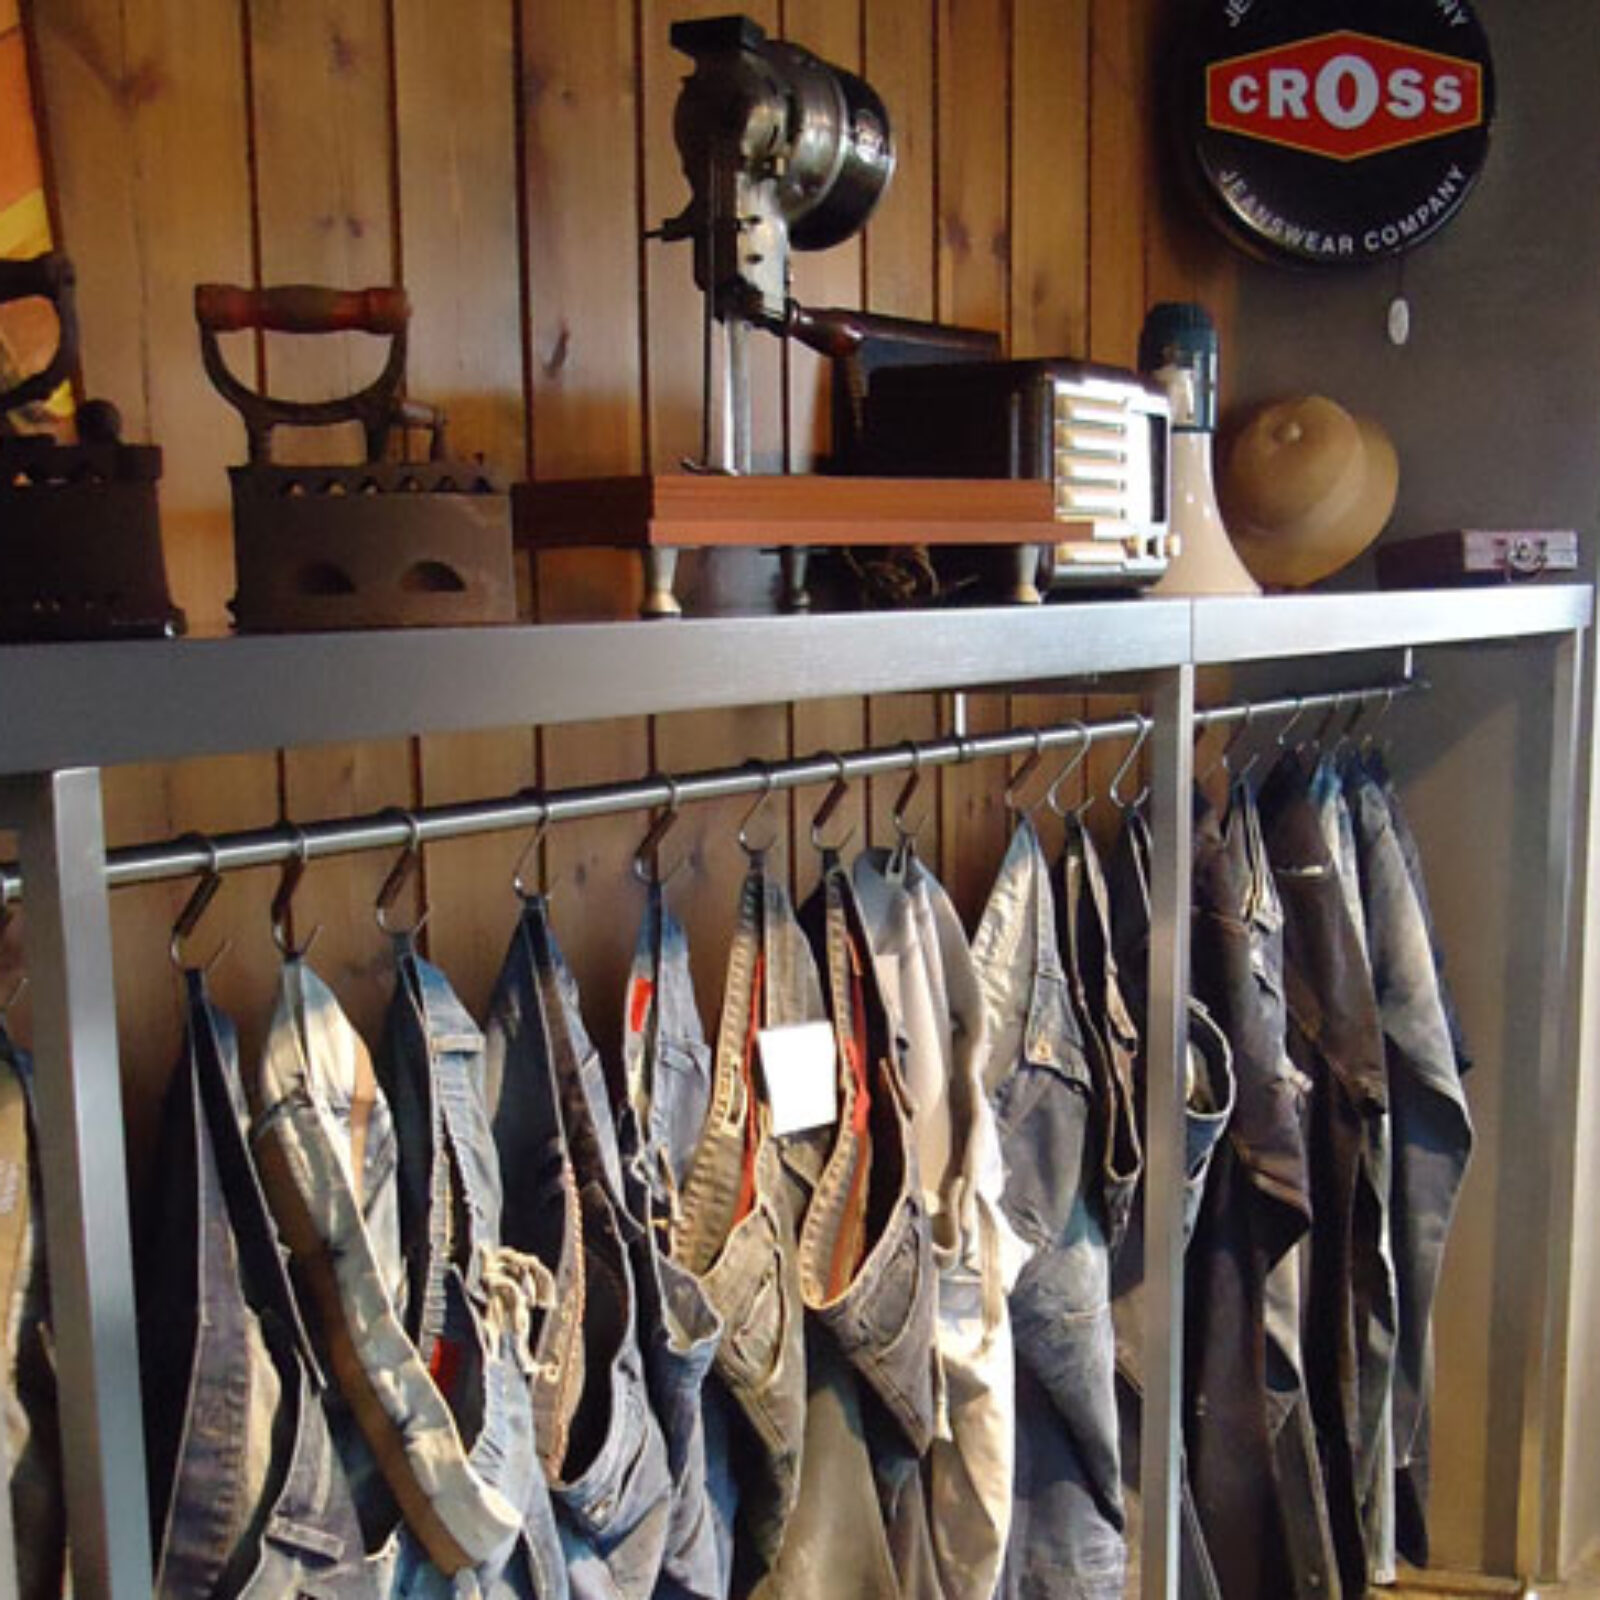 Cross Jeans Showroom